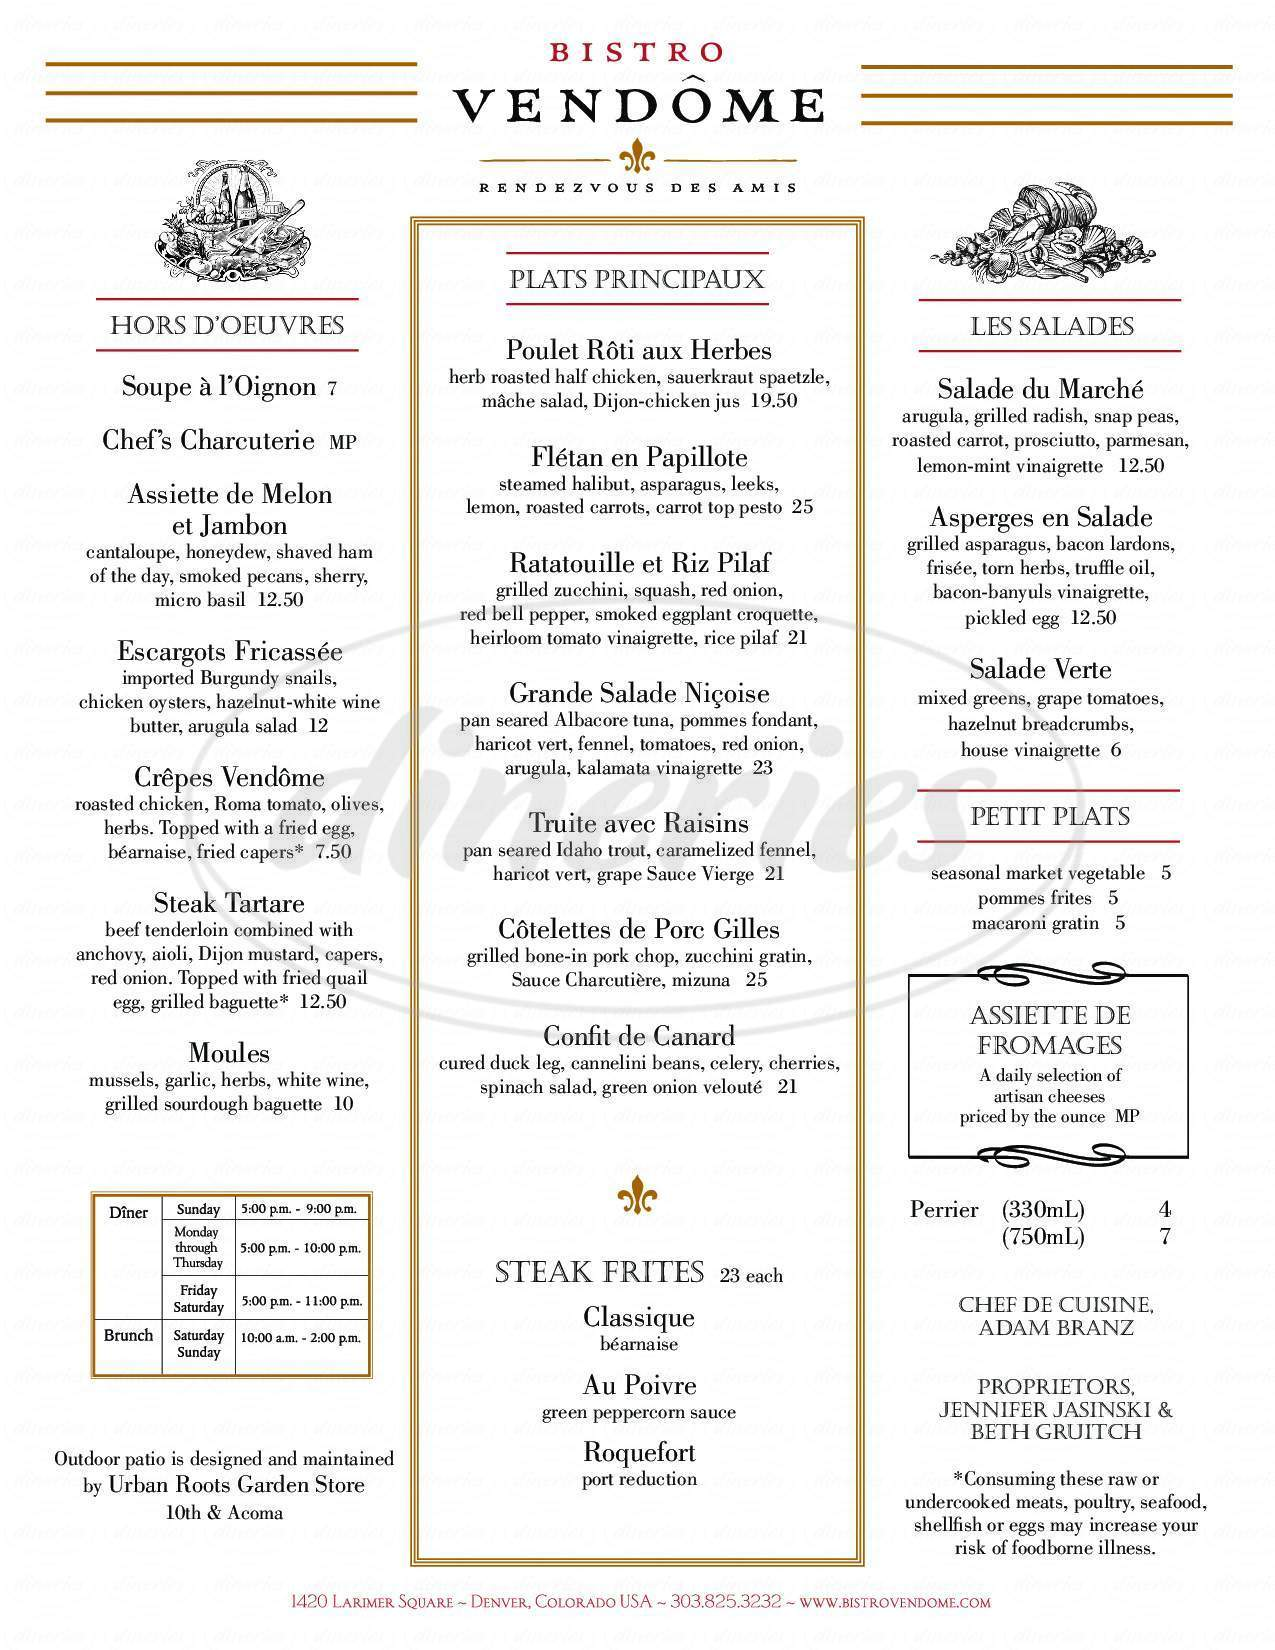 menu for Bistro Vendôme